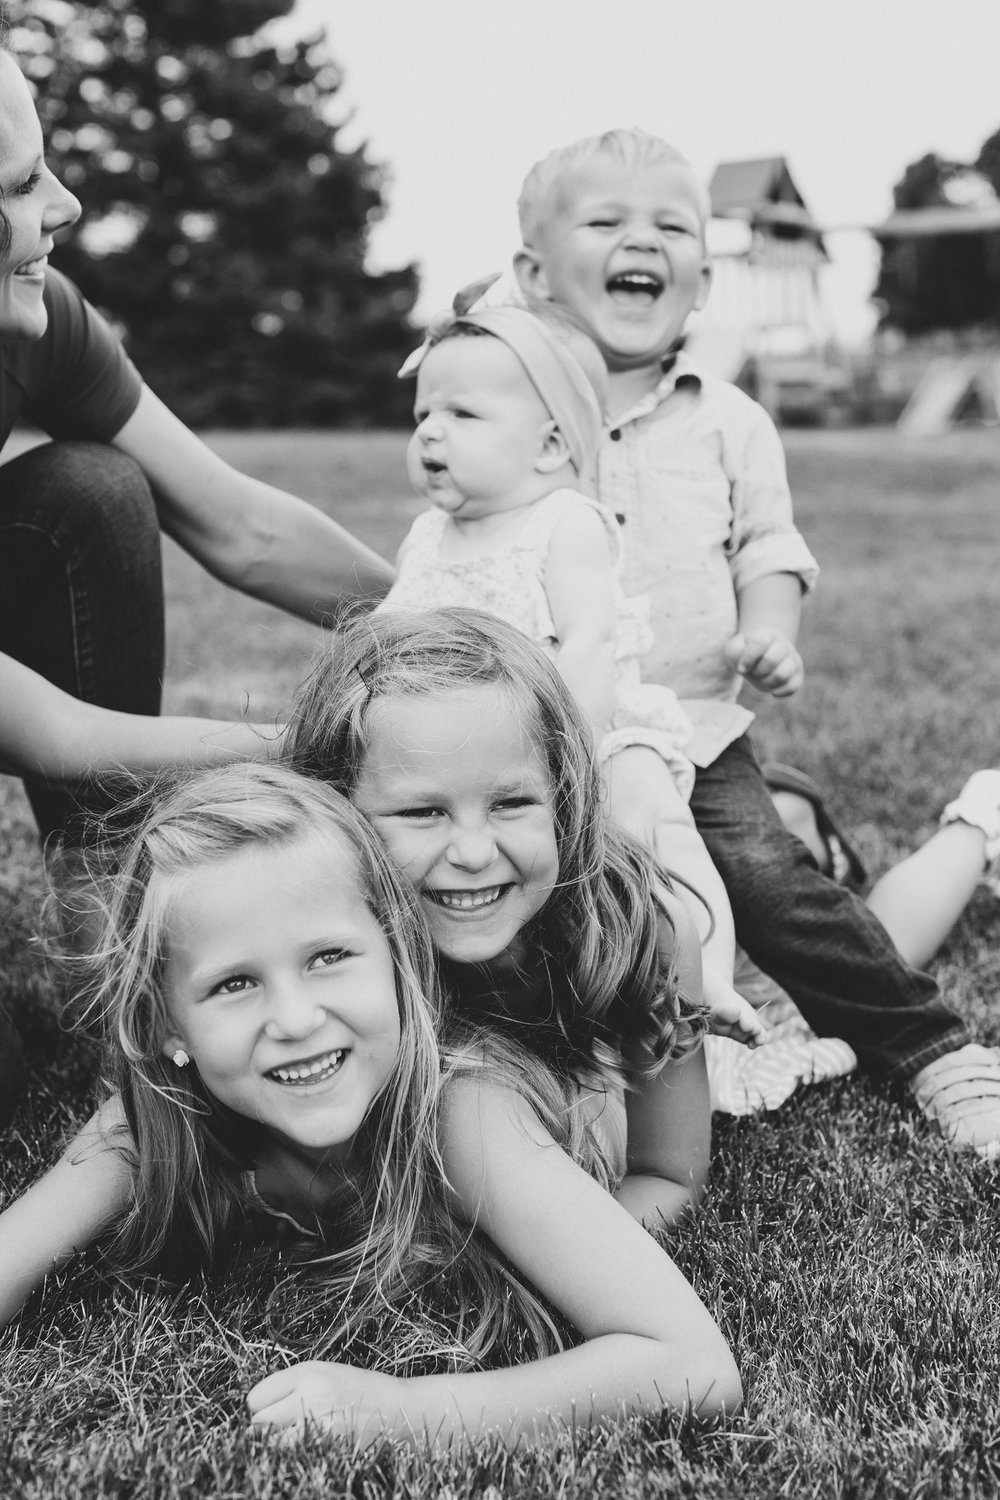 Jordan Edens Photography_Tri cities photographer_tri cities family photographer_kennewick photographer_richland photographer_travel photographer_iowa photographer_family photos_lifestyle family_child photographer_memories and moments_24